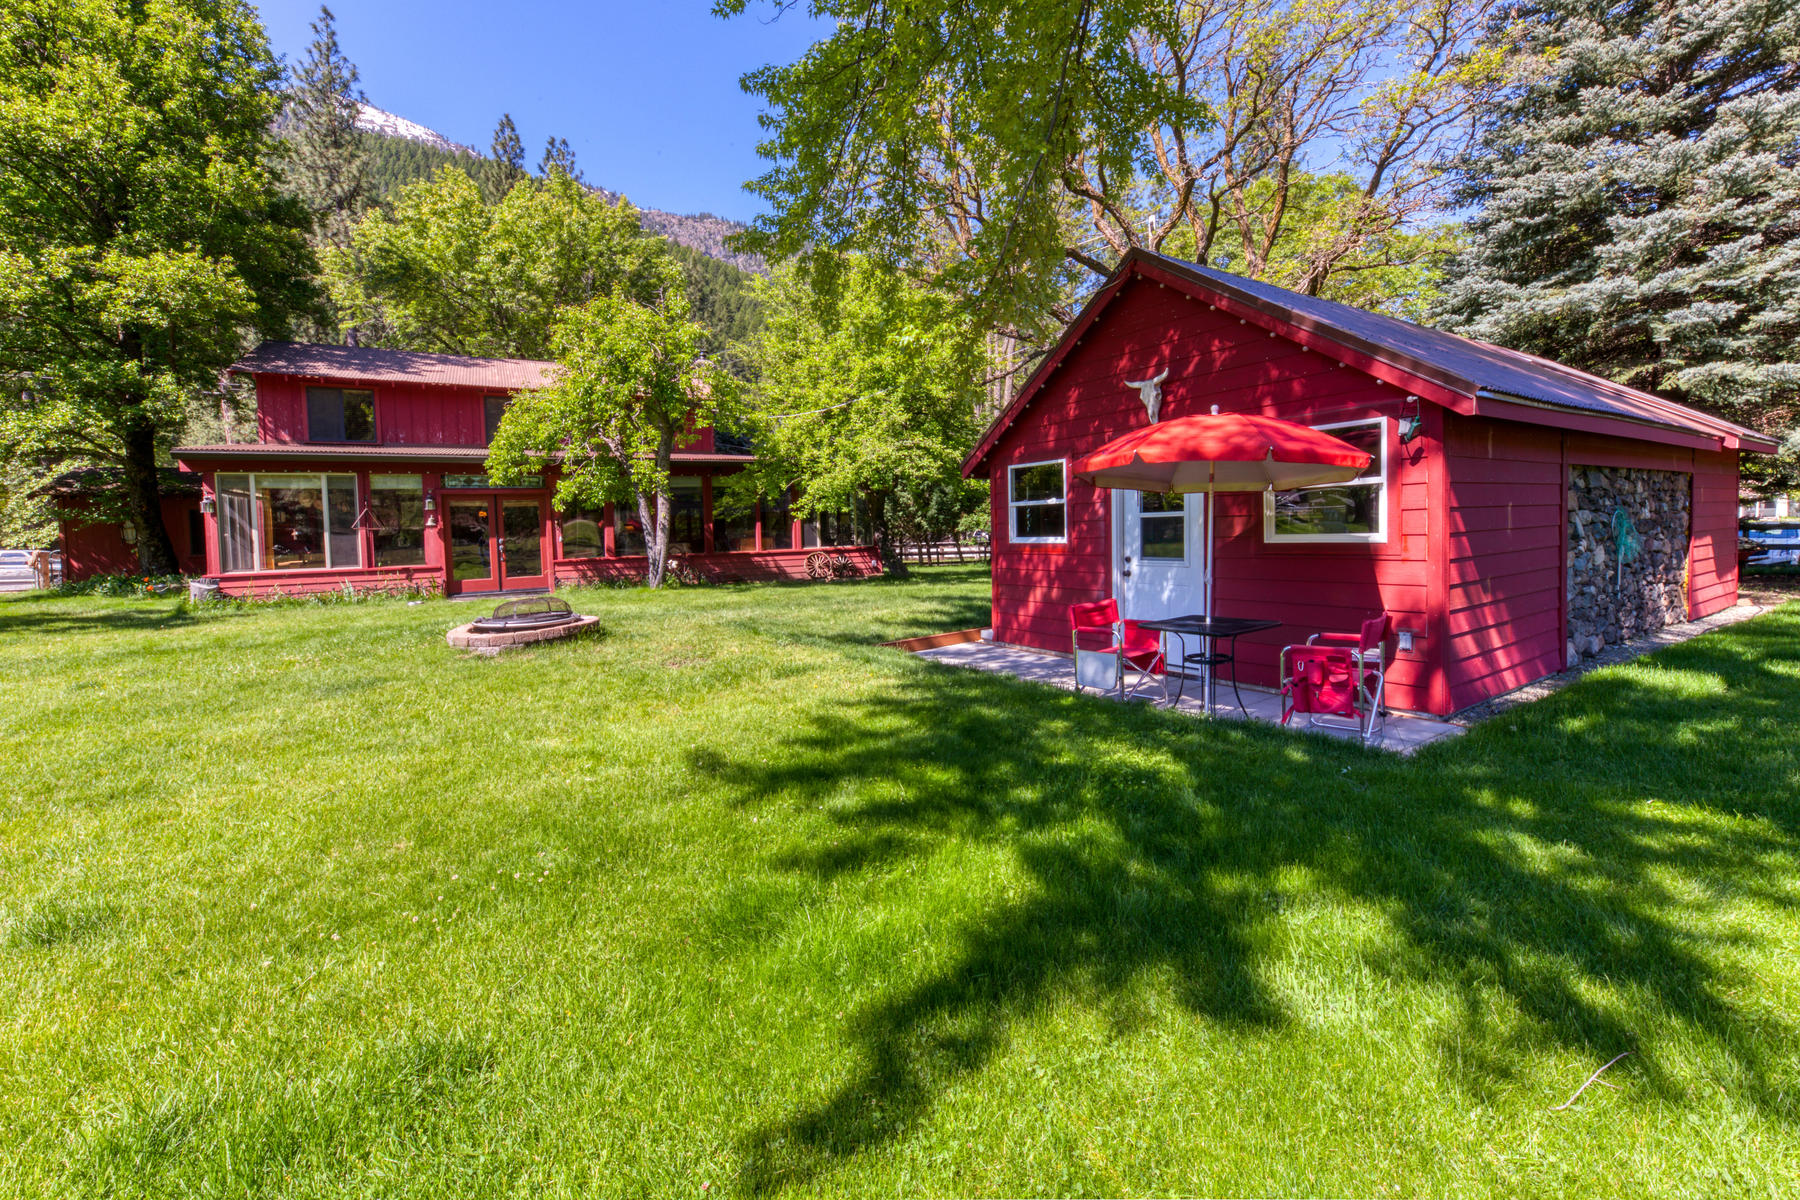 Additional photo for property listing at 2891 Genesee Rd. Taylorsville, CA 95983 2891 Genesee Rd. Taylorsville, California 95983 United States